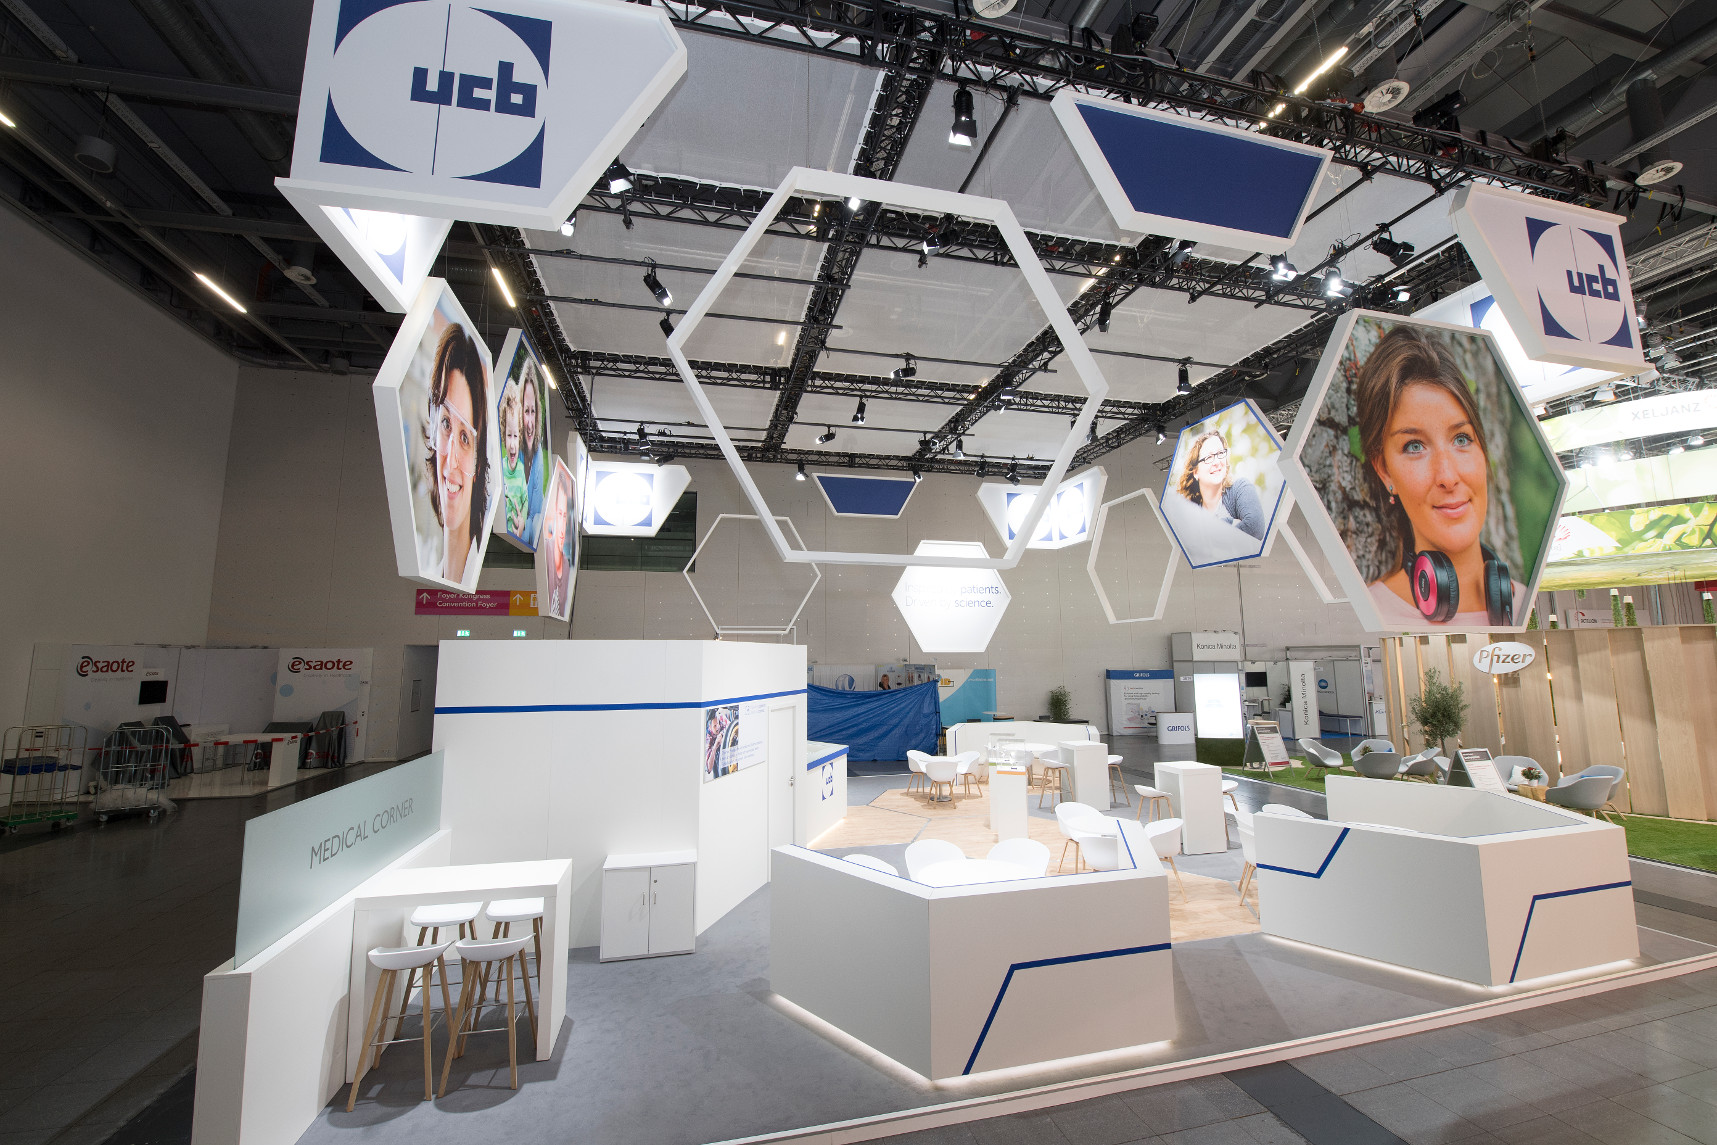 UCB_DGRh_Messestand_4